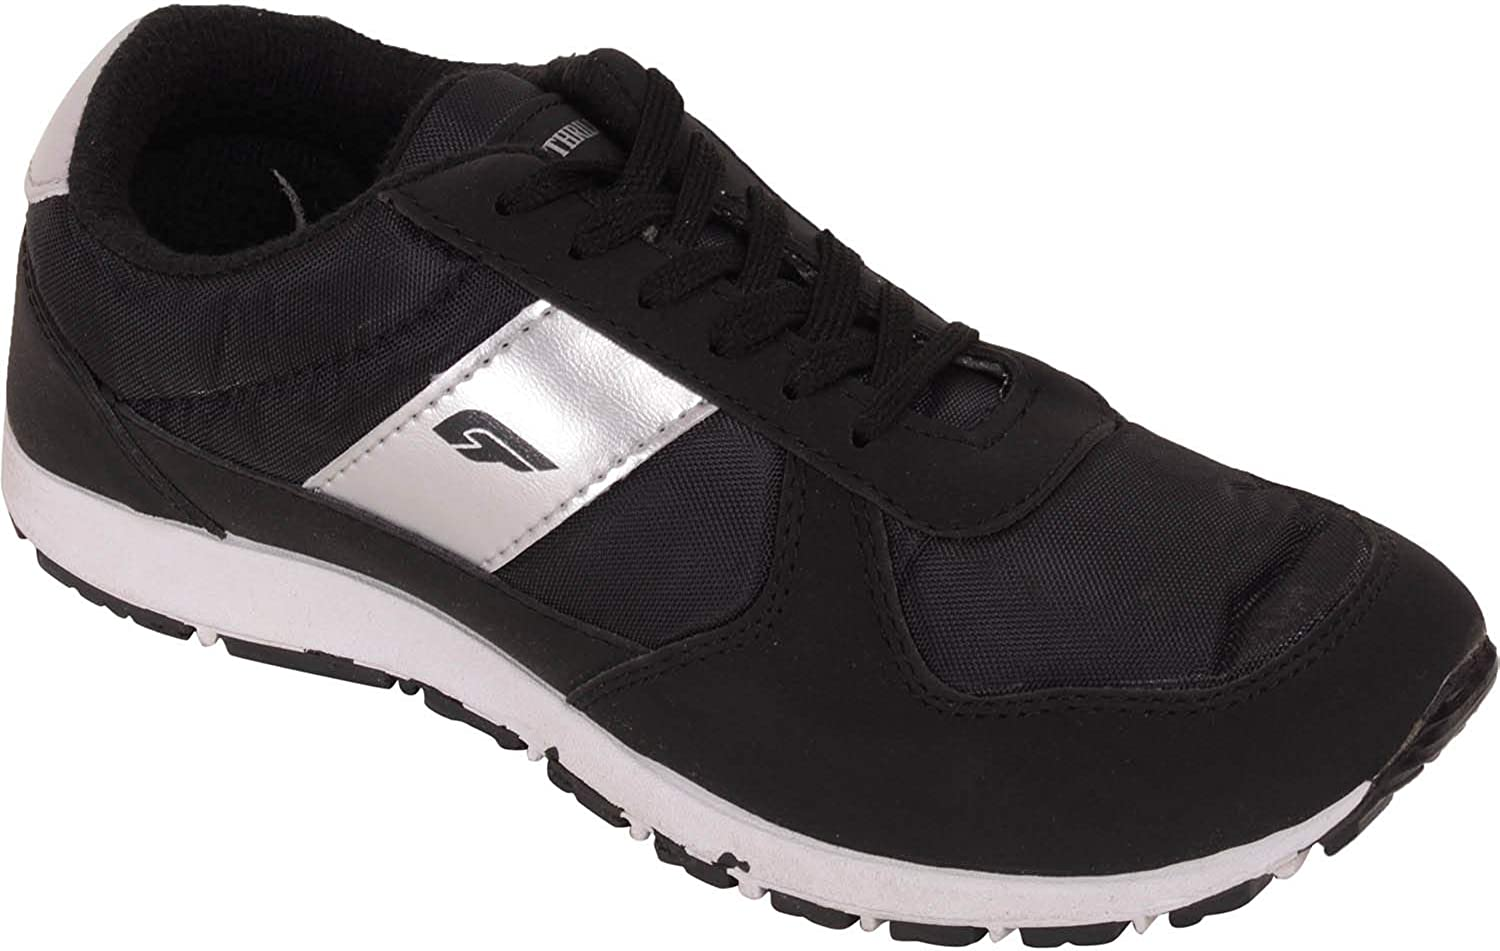 Bata Men Black Running Sports Shoes: Amazon.es: Zapatos y complementos